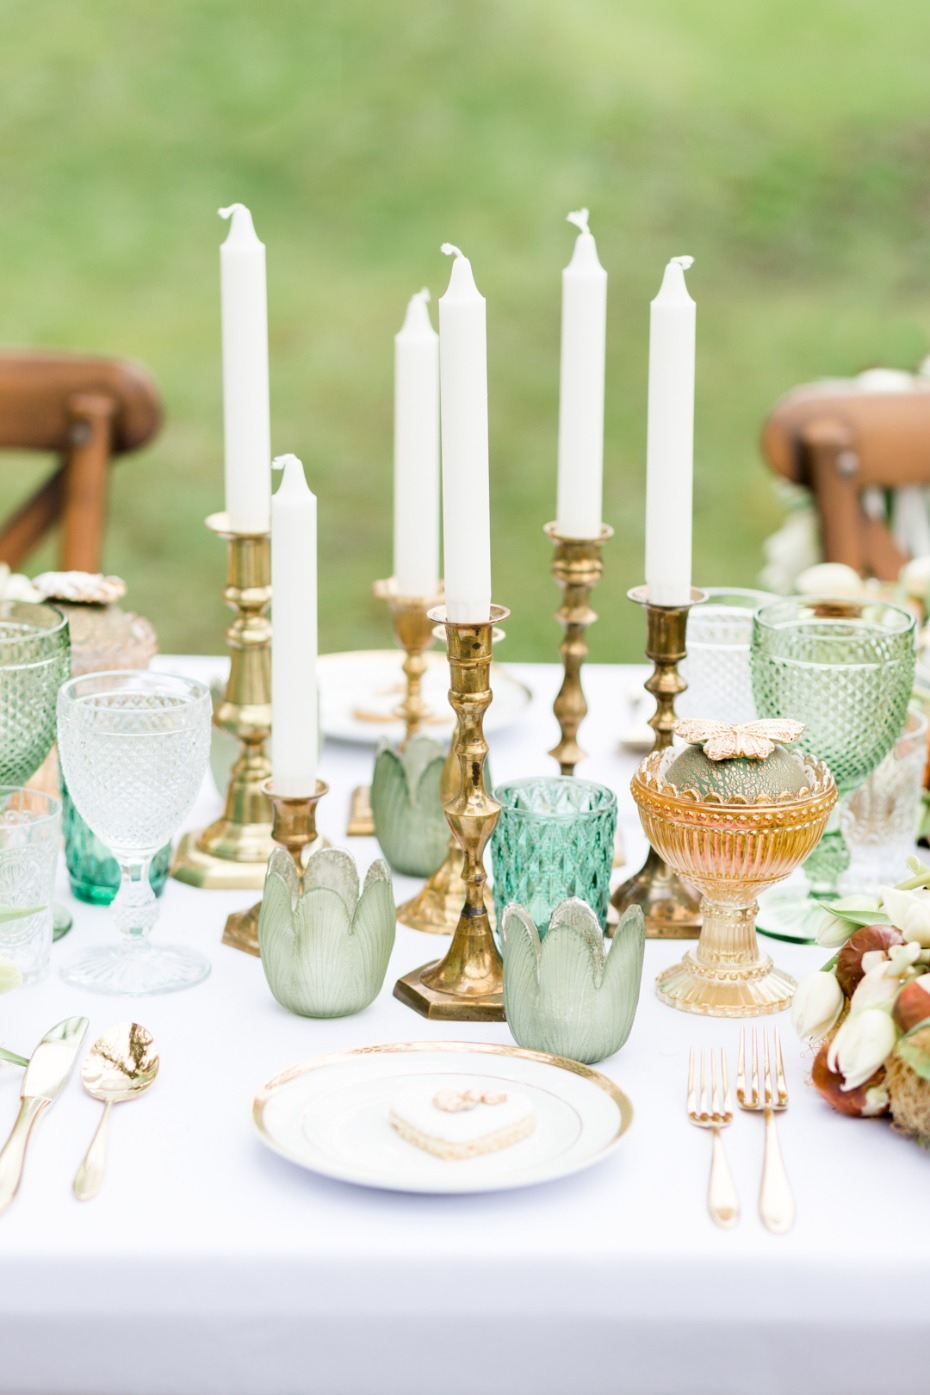 Brass candle sticks and colored glassware